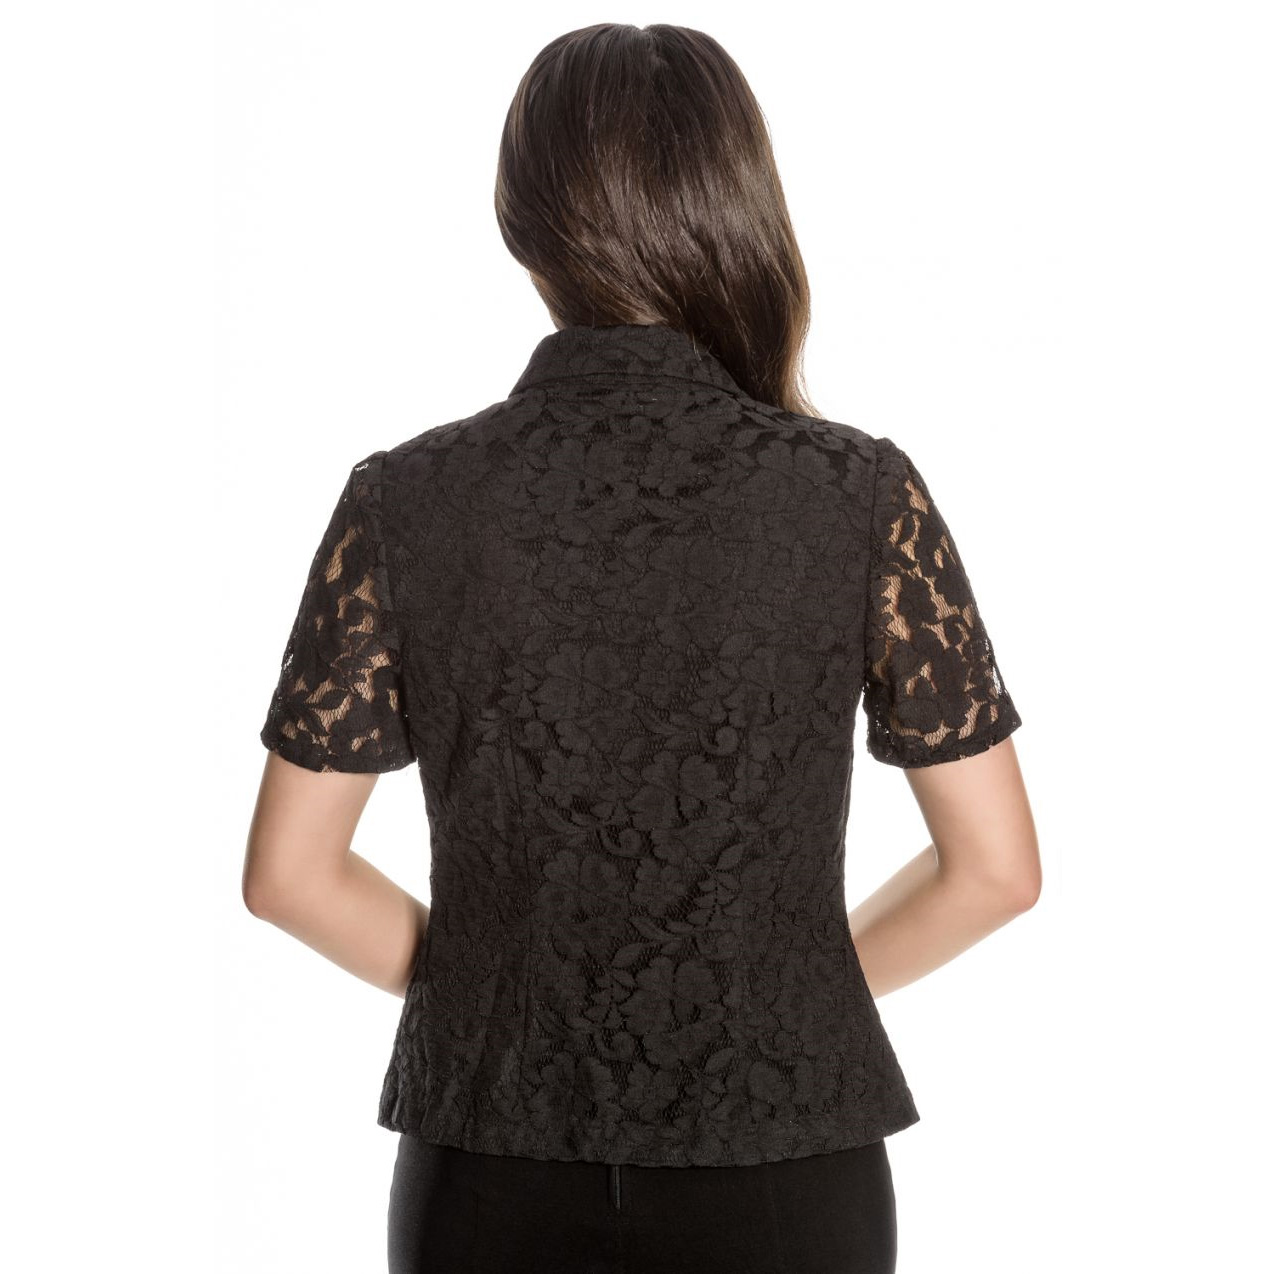 Hell-Bunny-Spin-Doctor-Vampire-Gothic-Shirt-Top-ROWENA-Lace-Blouse-All-Sizes Indexbild 13